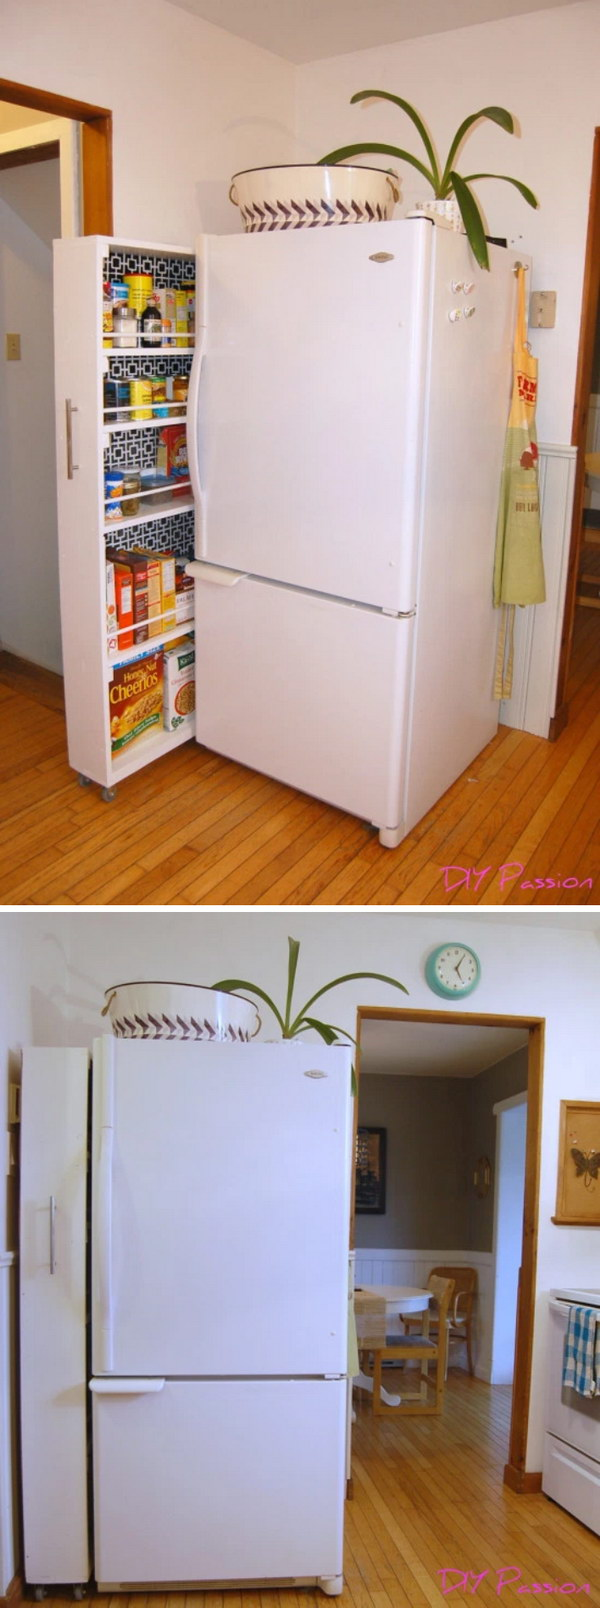 Make Use of the Space Between the Wall and the Fridge with this DIY Rolling Pantry.